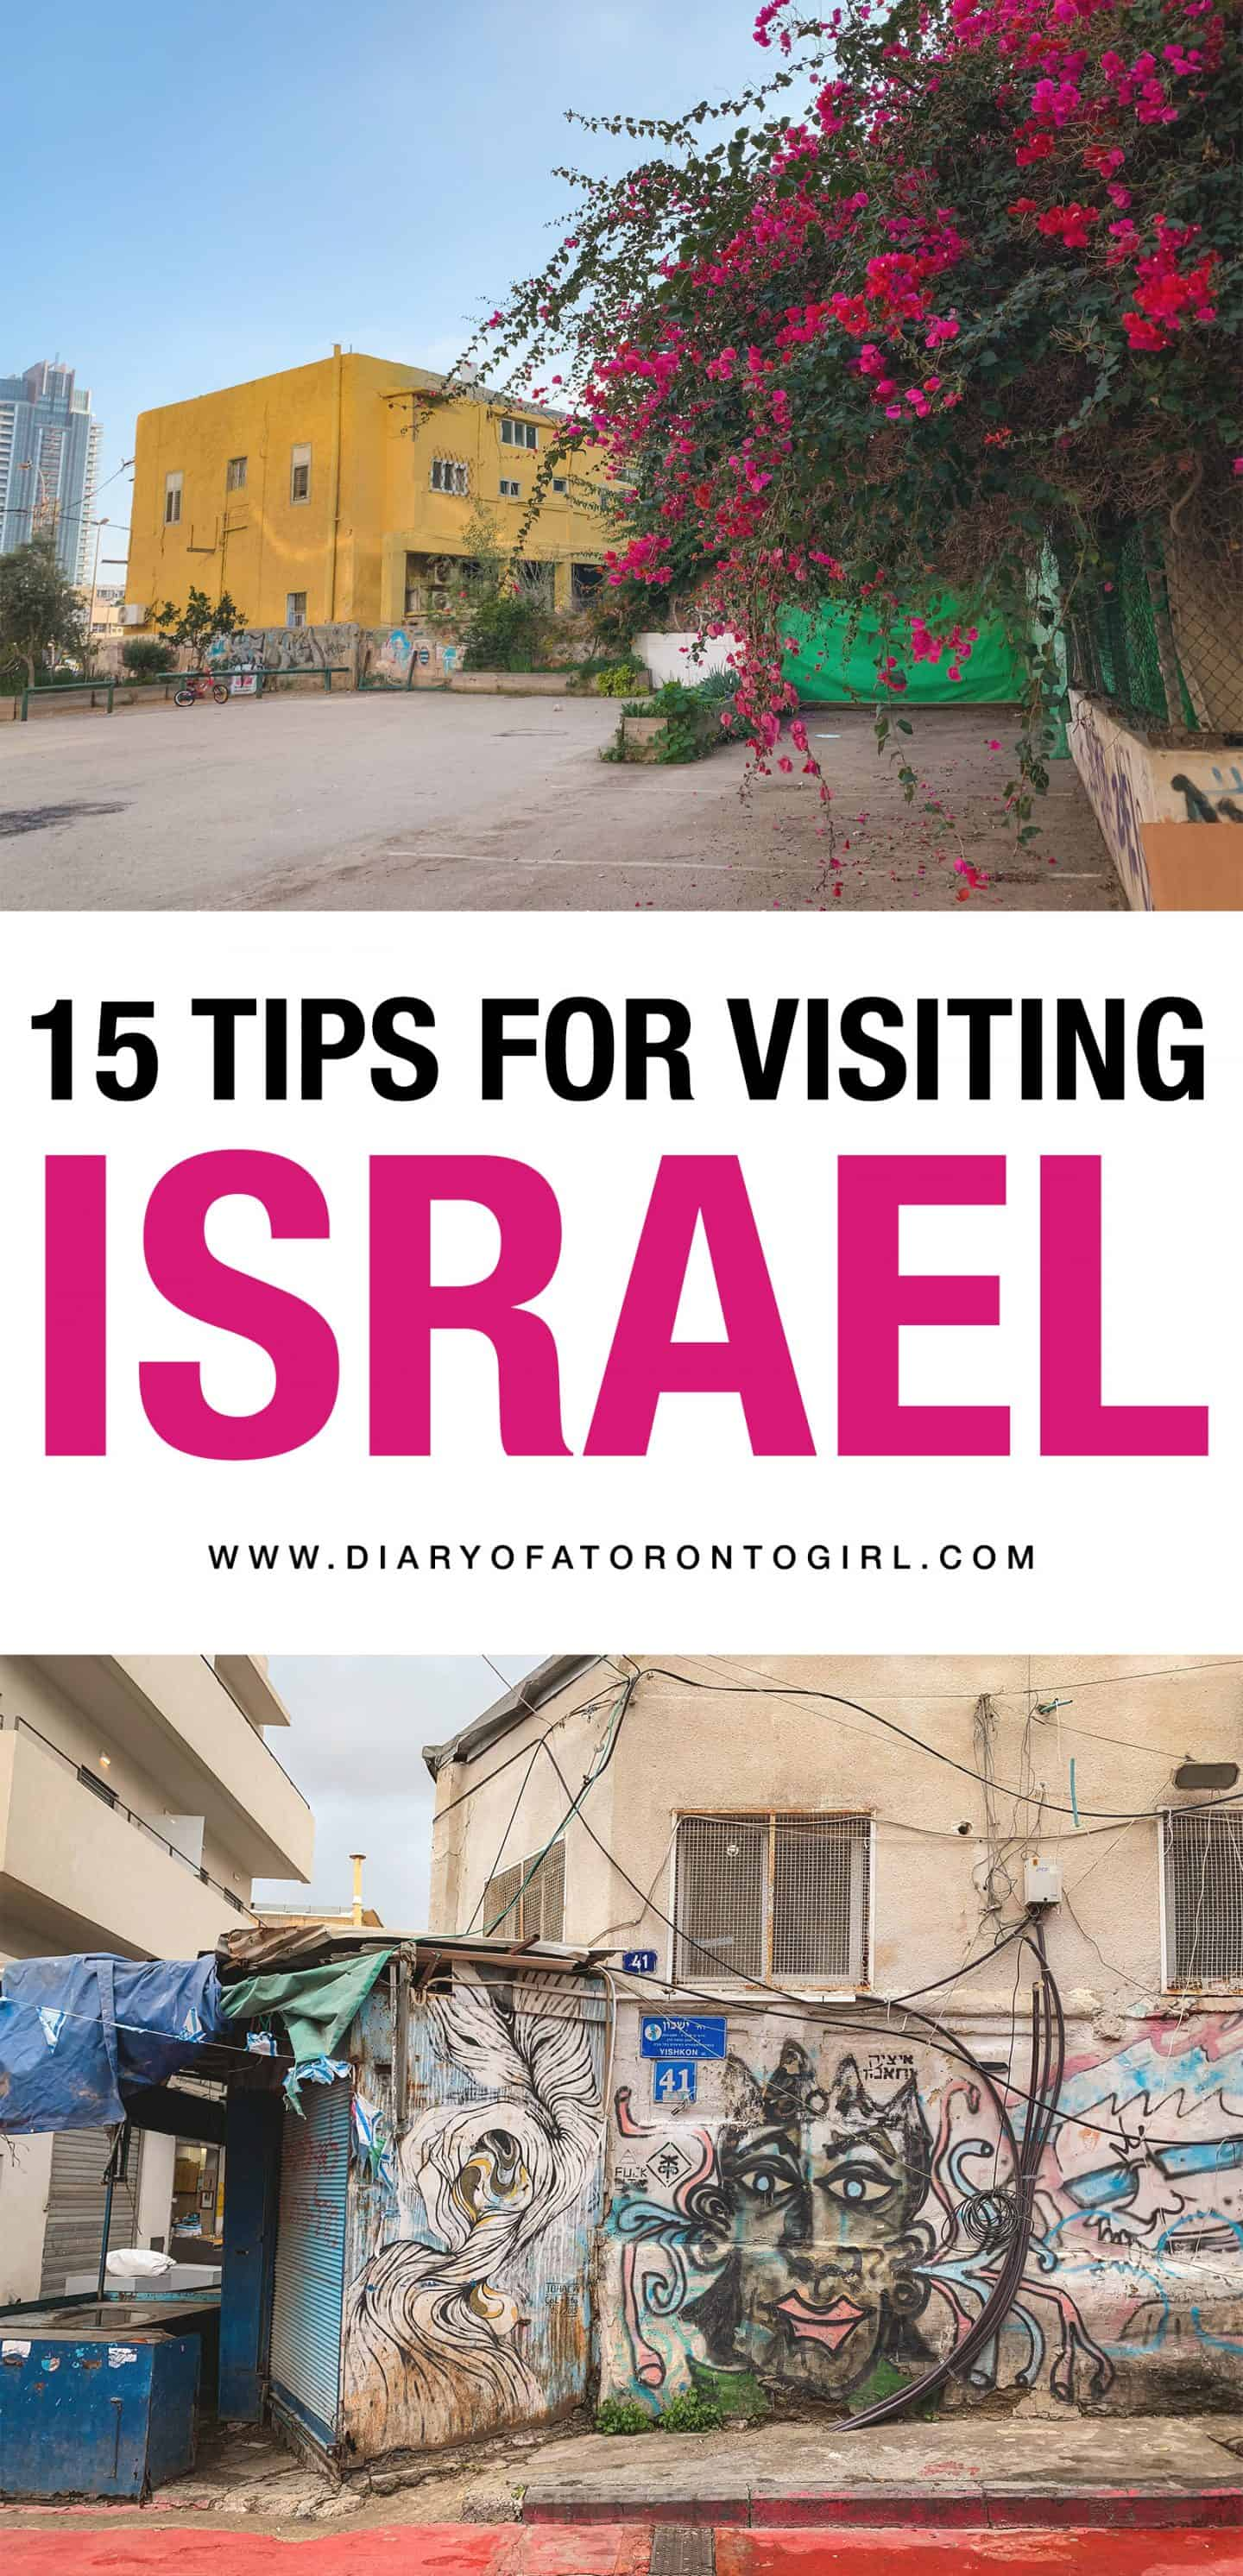 Helpful tips on visiting Tel Aviv, Israel, including what to wear and things you need to know!